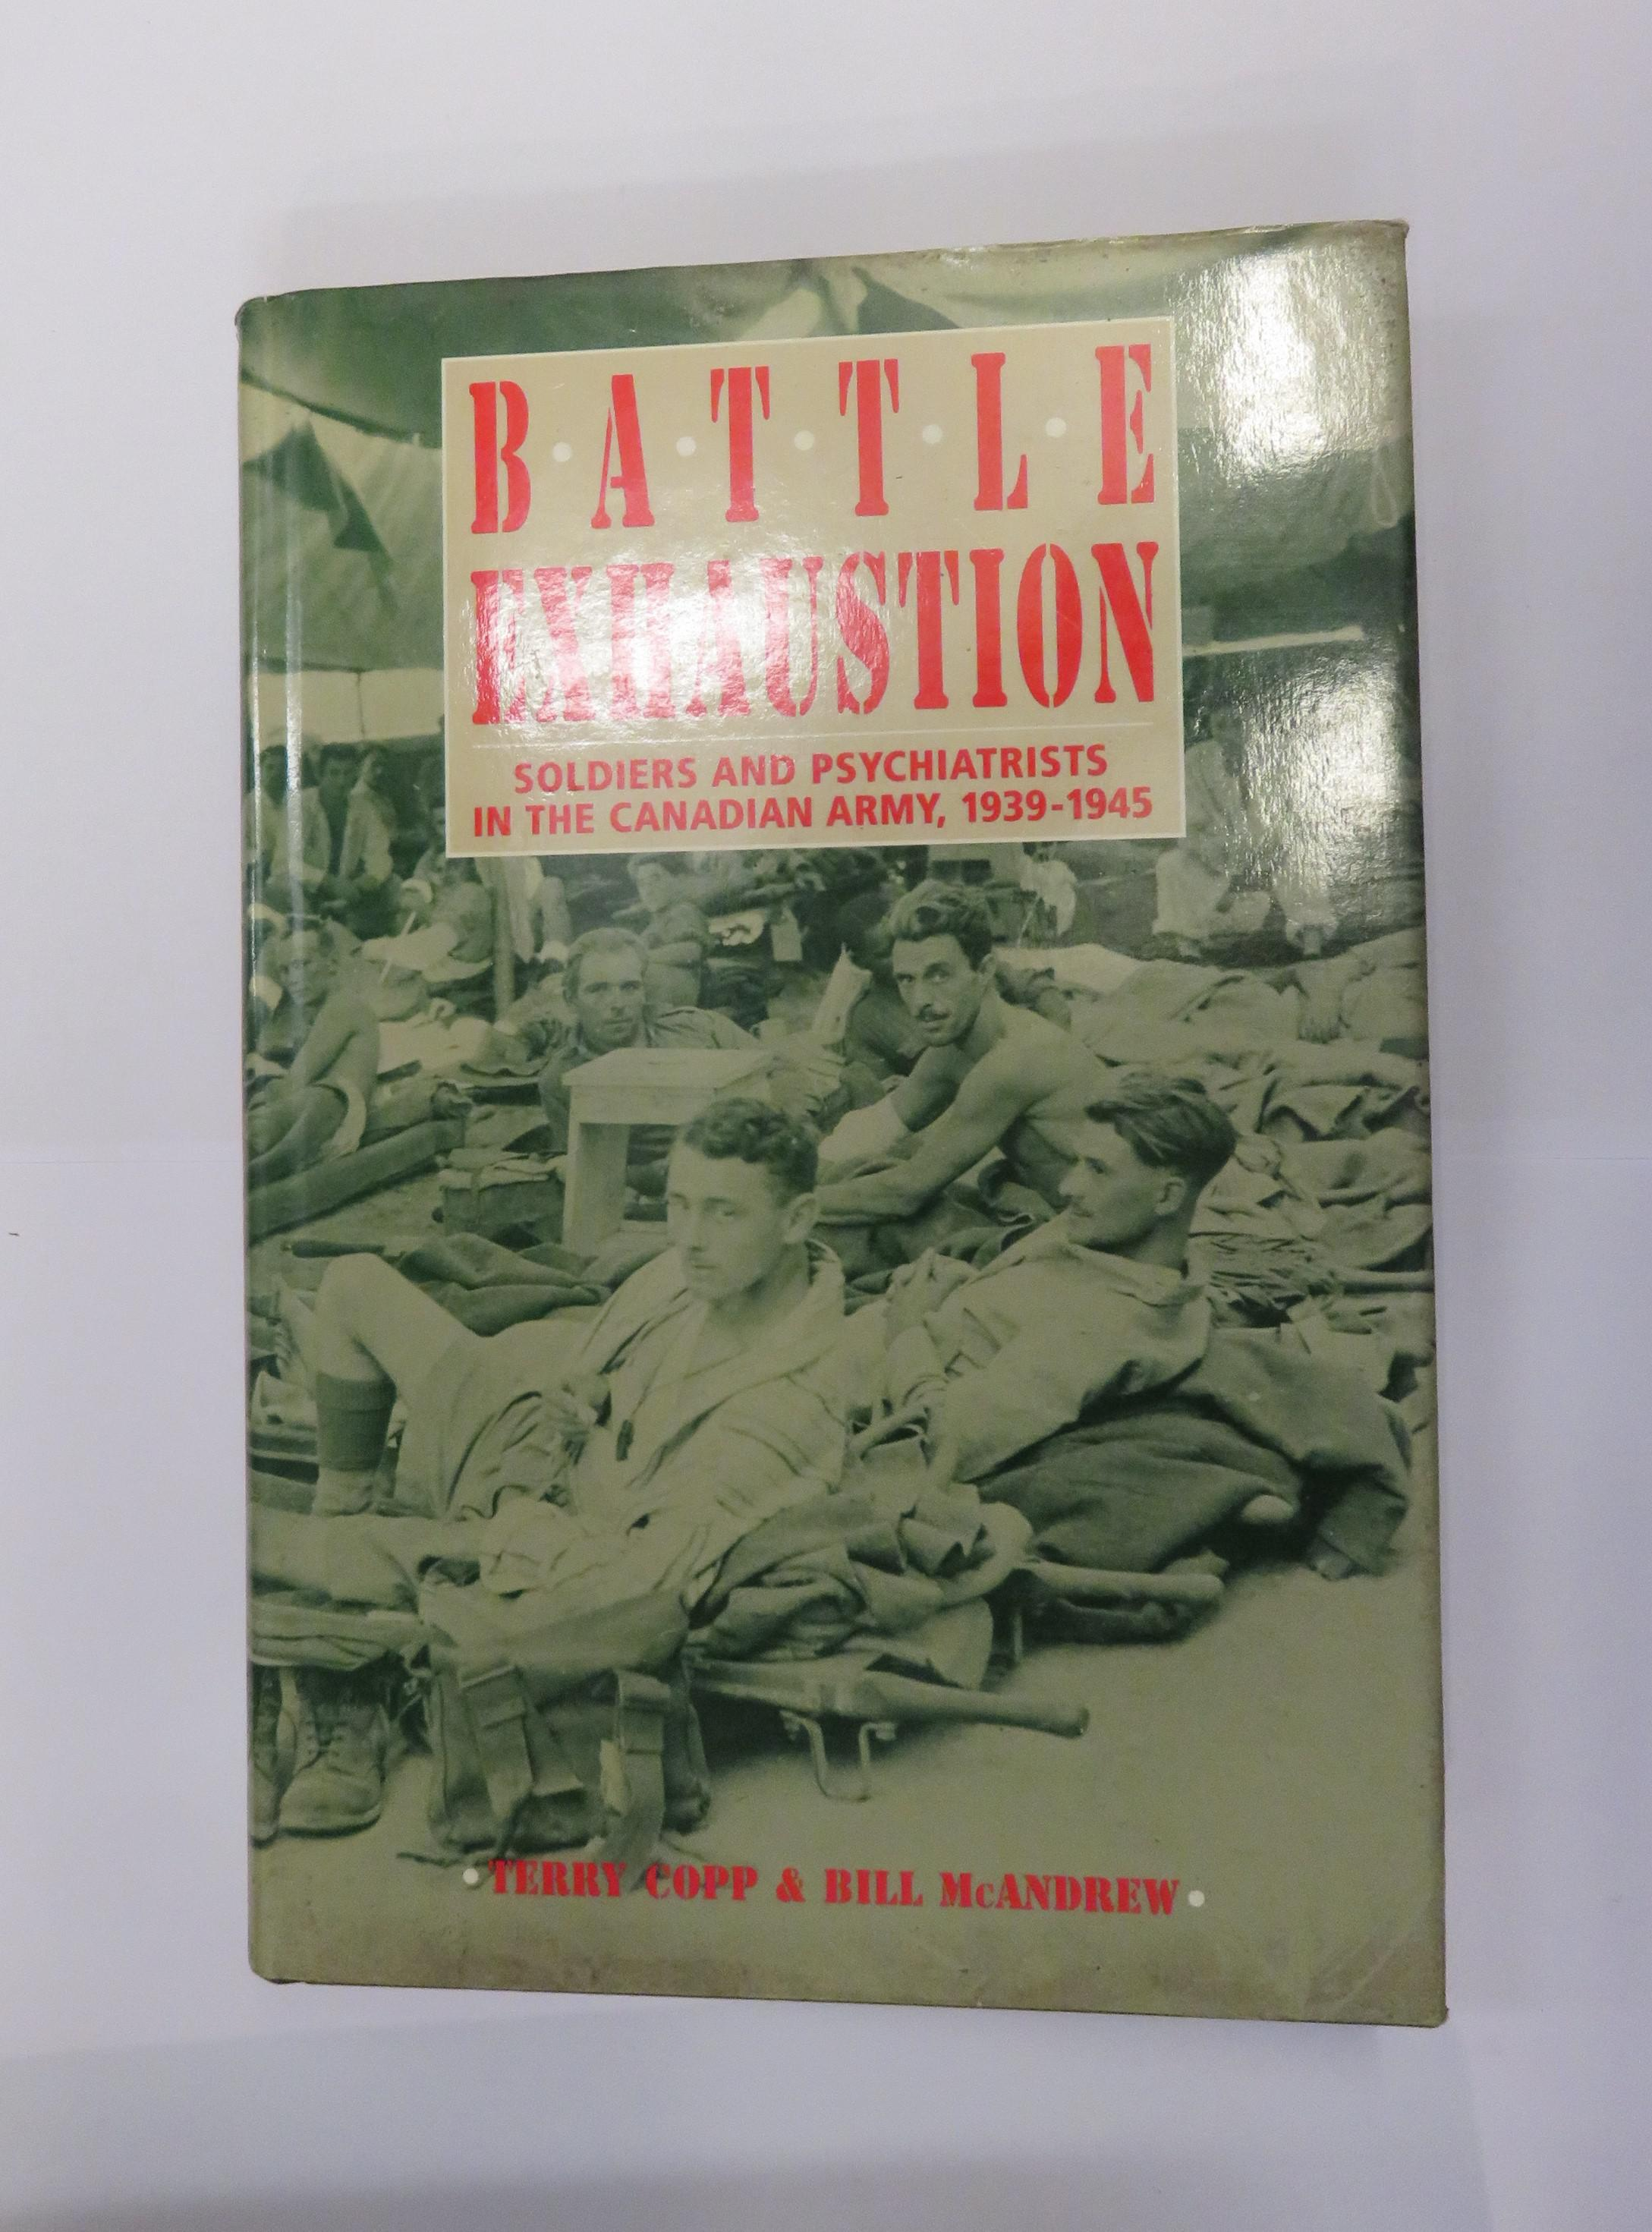 Battle Exhaustion: Soldiers and Psychiatrists in the Canadian Army, 1939-1945